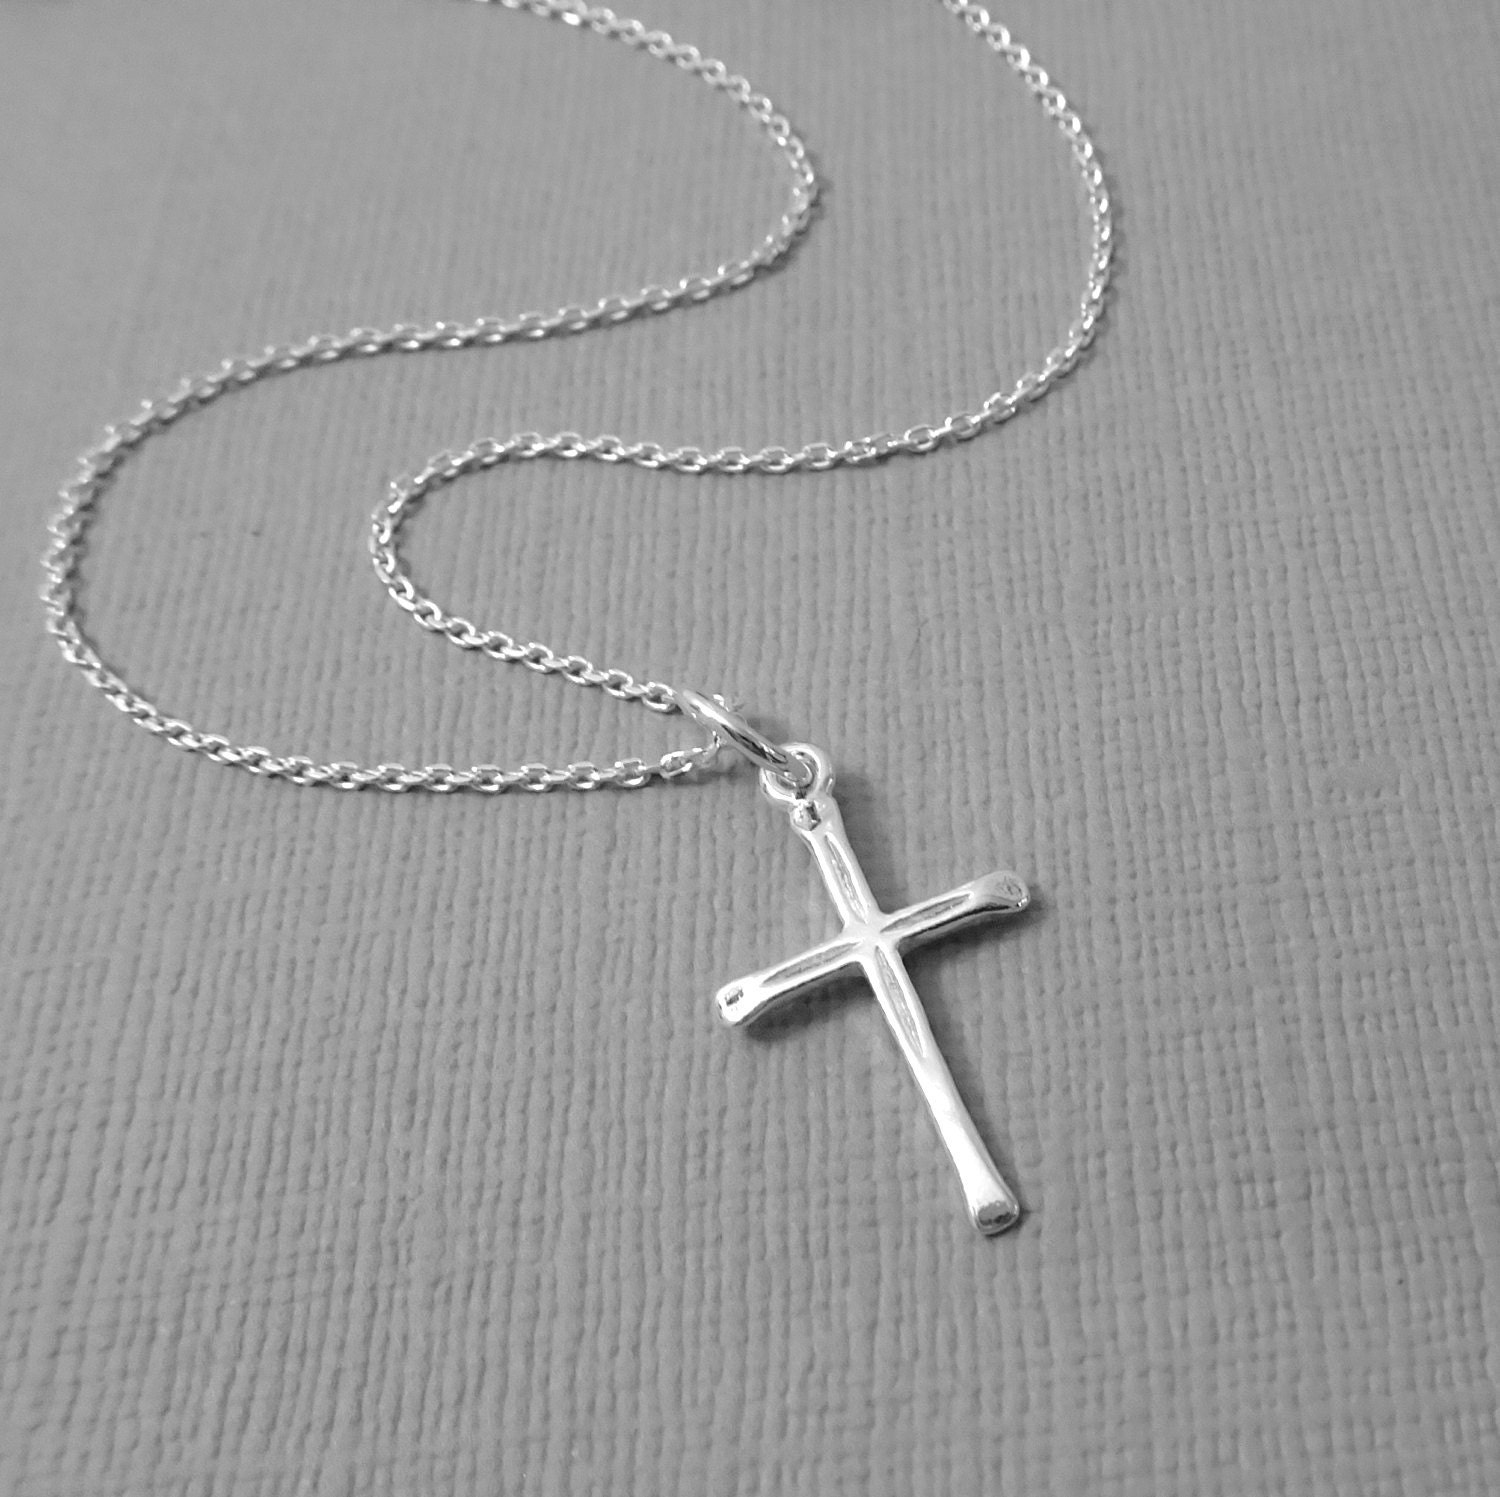 simple silver cross necklace sterling silver cross necklace. Black Bedroom Furniture Sets. Home Design Ideas